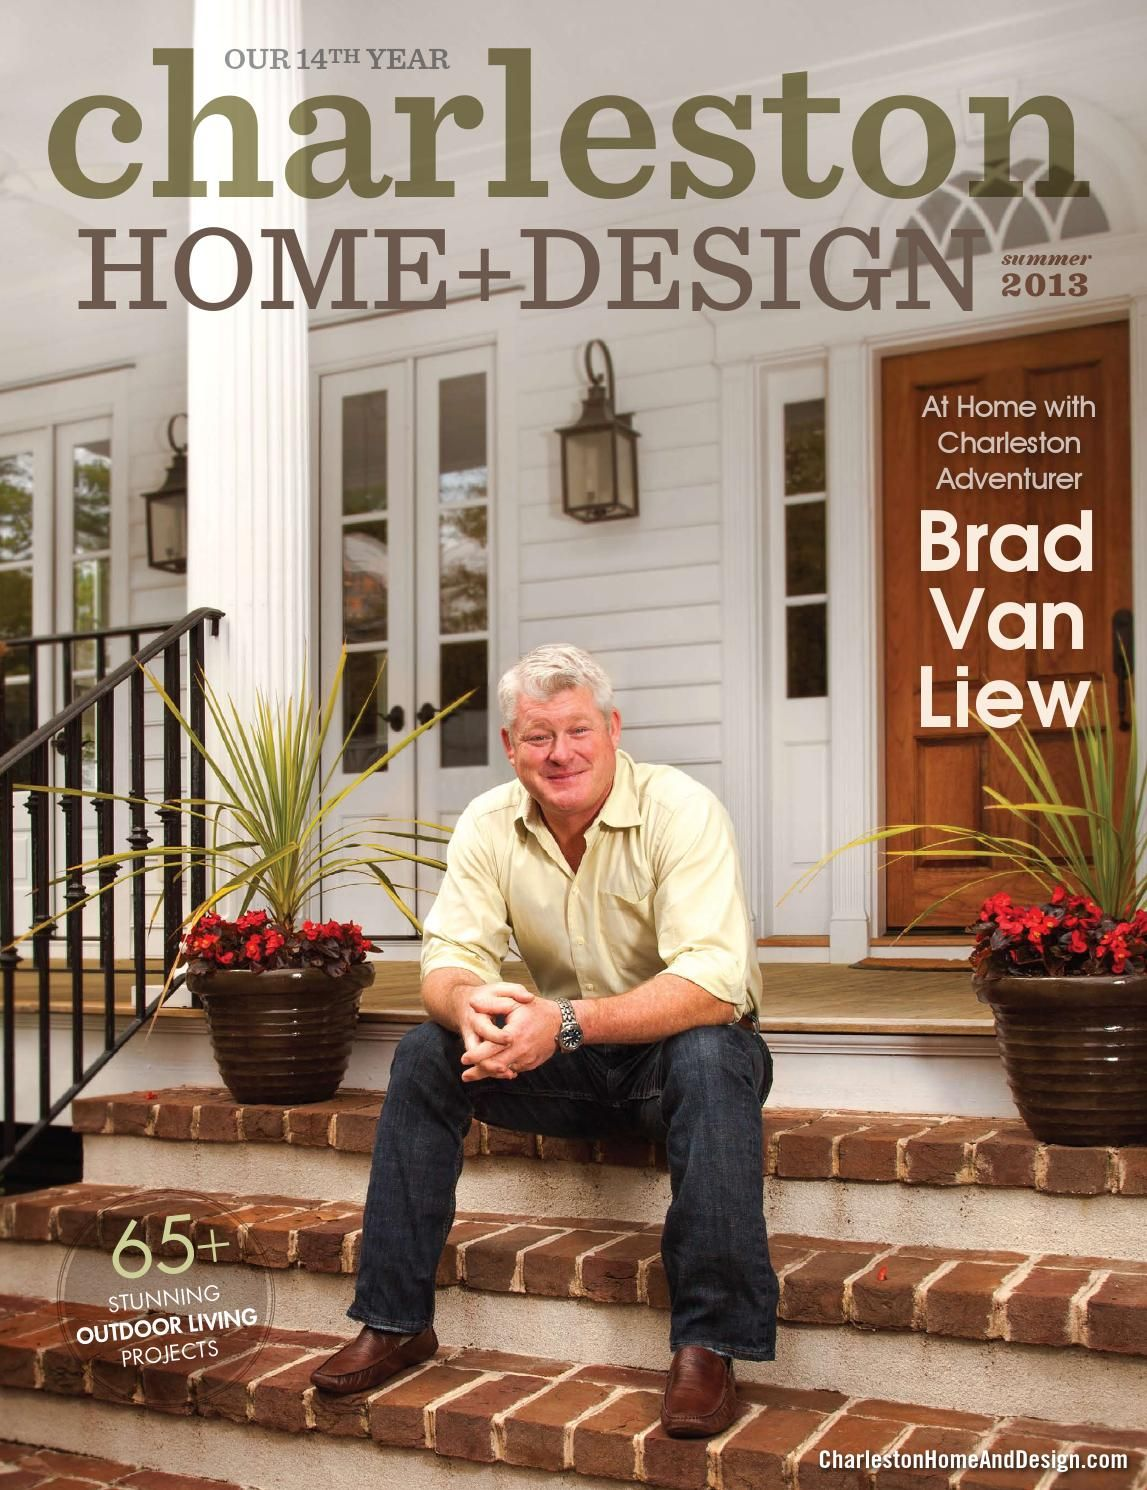 Charleston Home + Design Magazine - Summer 2013 | Design magazine ...